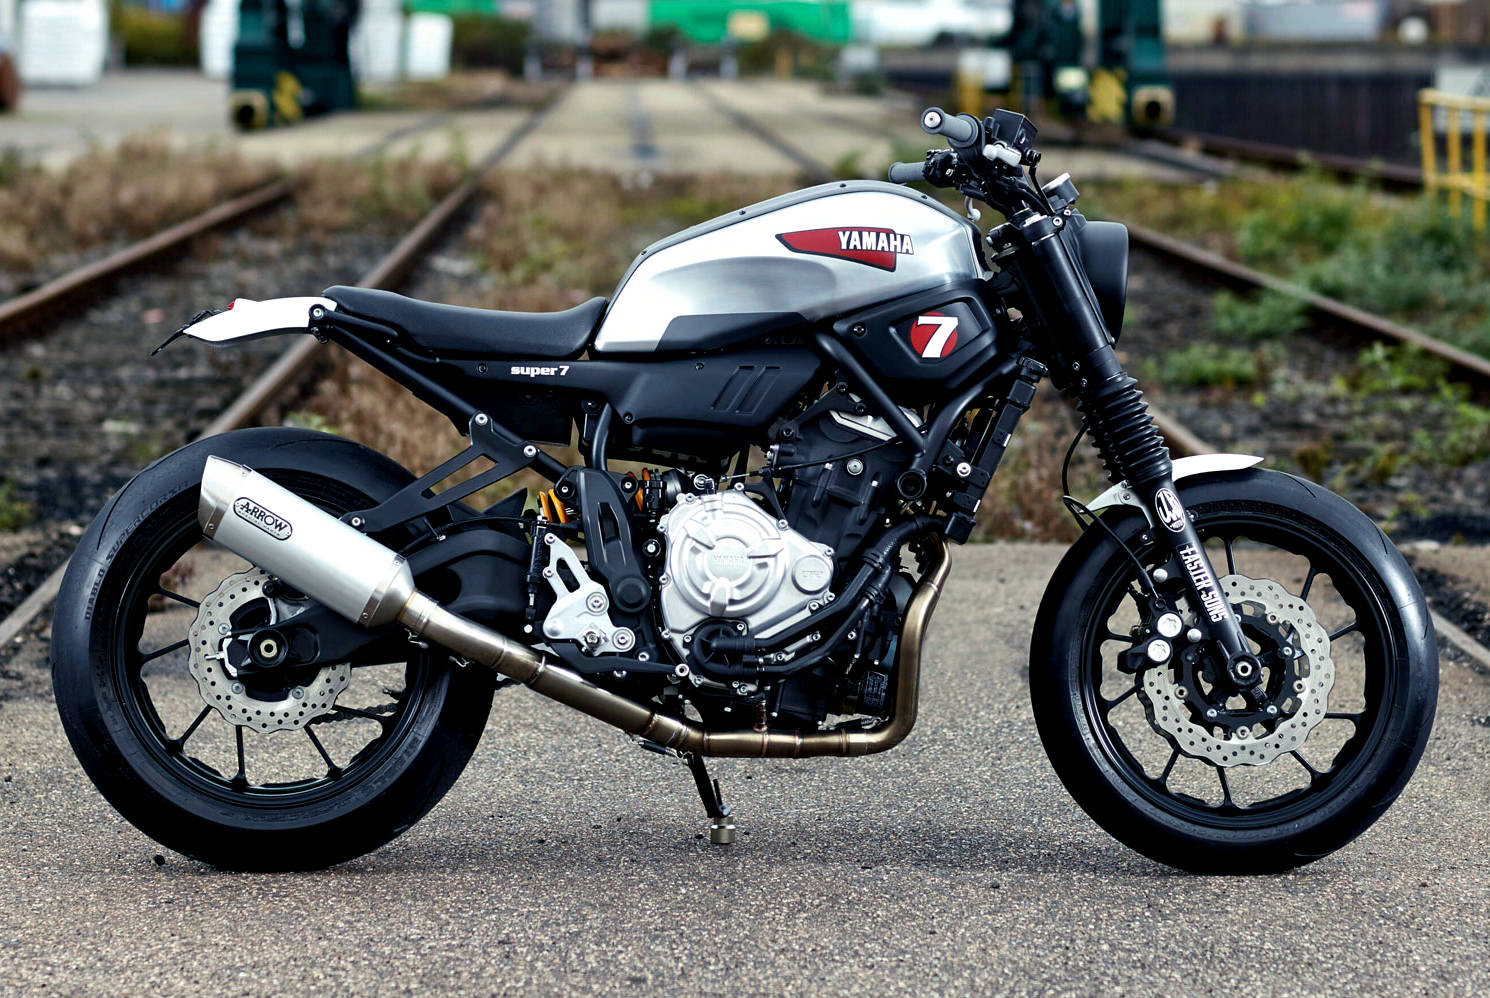 This One Based Largely On The Ultra Light Powerful Yamaha FZ 07 Was Created By JvB Moto In Germany And Is Called